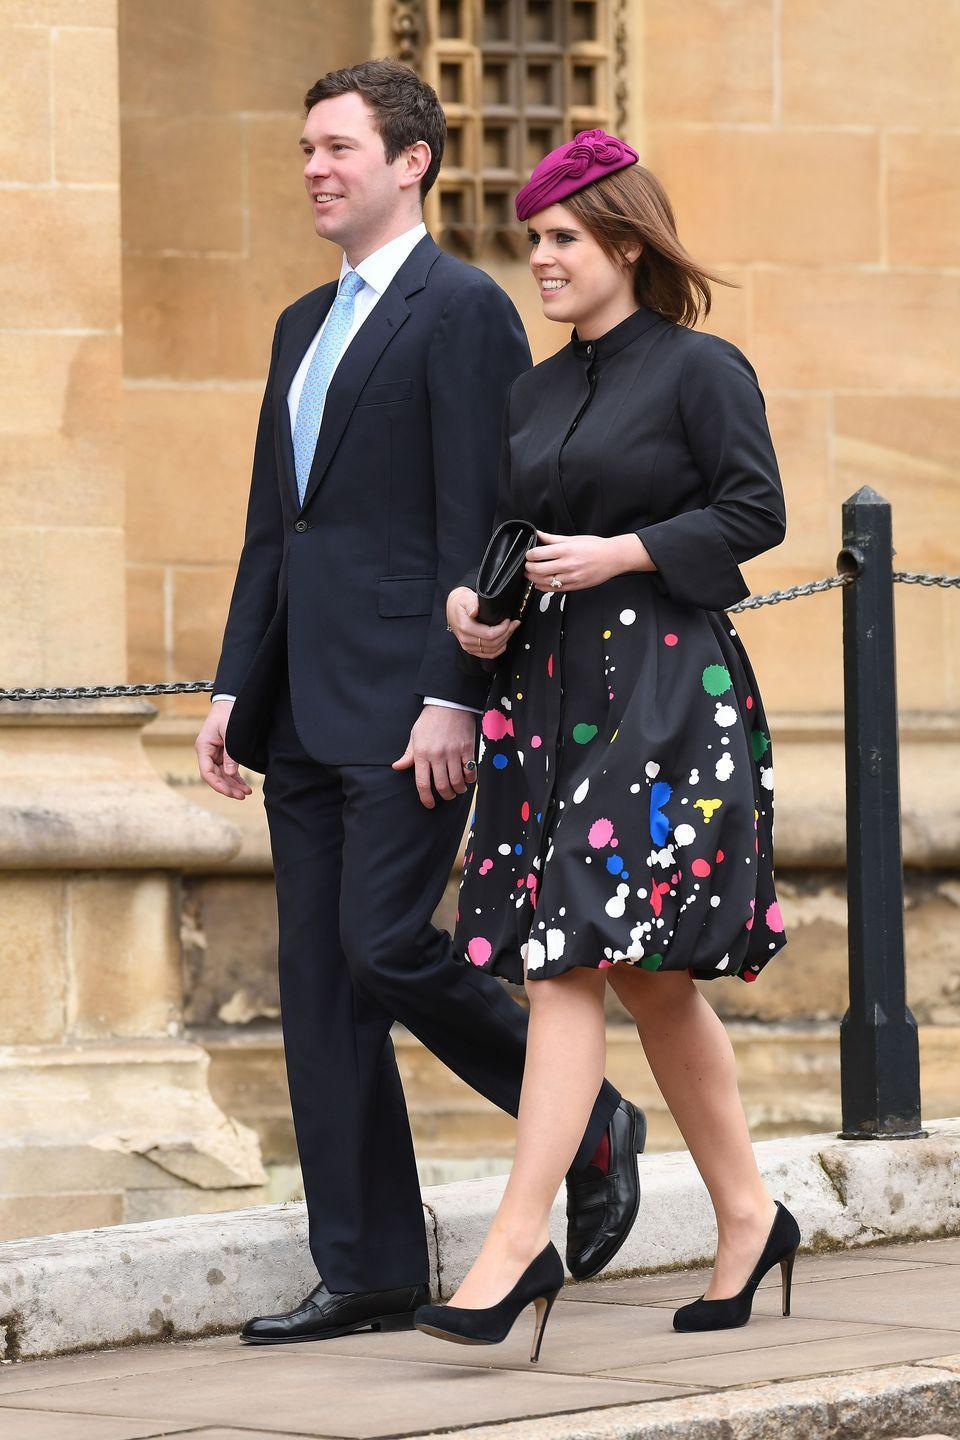 """<p>This marks their first official appearance at a royal event together.</p><p><strong><a href=""""https://www.townandcountrymag.com/society/tradition/a15841755/princess-eugenie-jack-brooksbank-wedding/"""" rel=""""nofollow noopener"""" target=""""_blank"""" data-ylk=""""slk:More: Everything We Know So Far About Princess Eugenie and Jack Brooksbank's Wedding"""" class=""""link rapid-noclick-resp"""">More: Everything We Know So Far About Princess Eugenie and Jack Brooksbank's Wedding</a></strong></p>"""